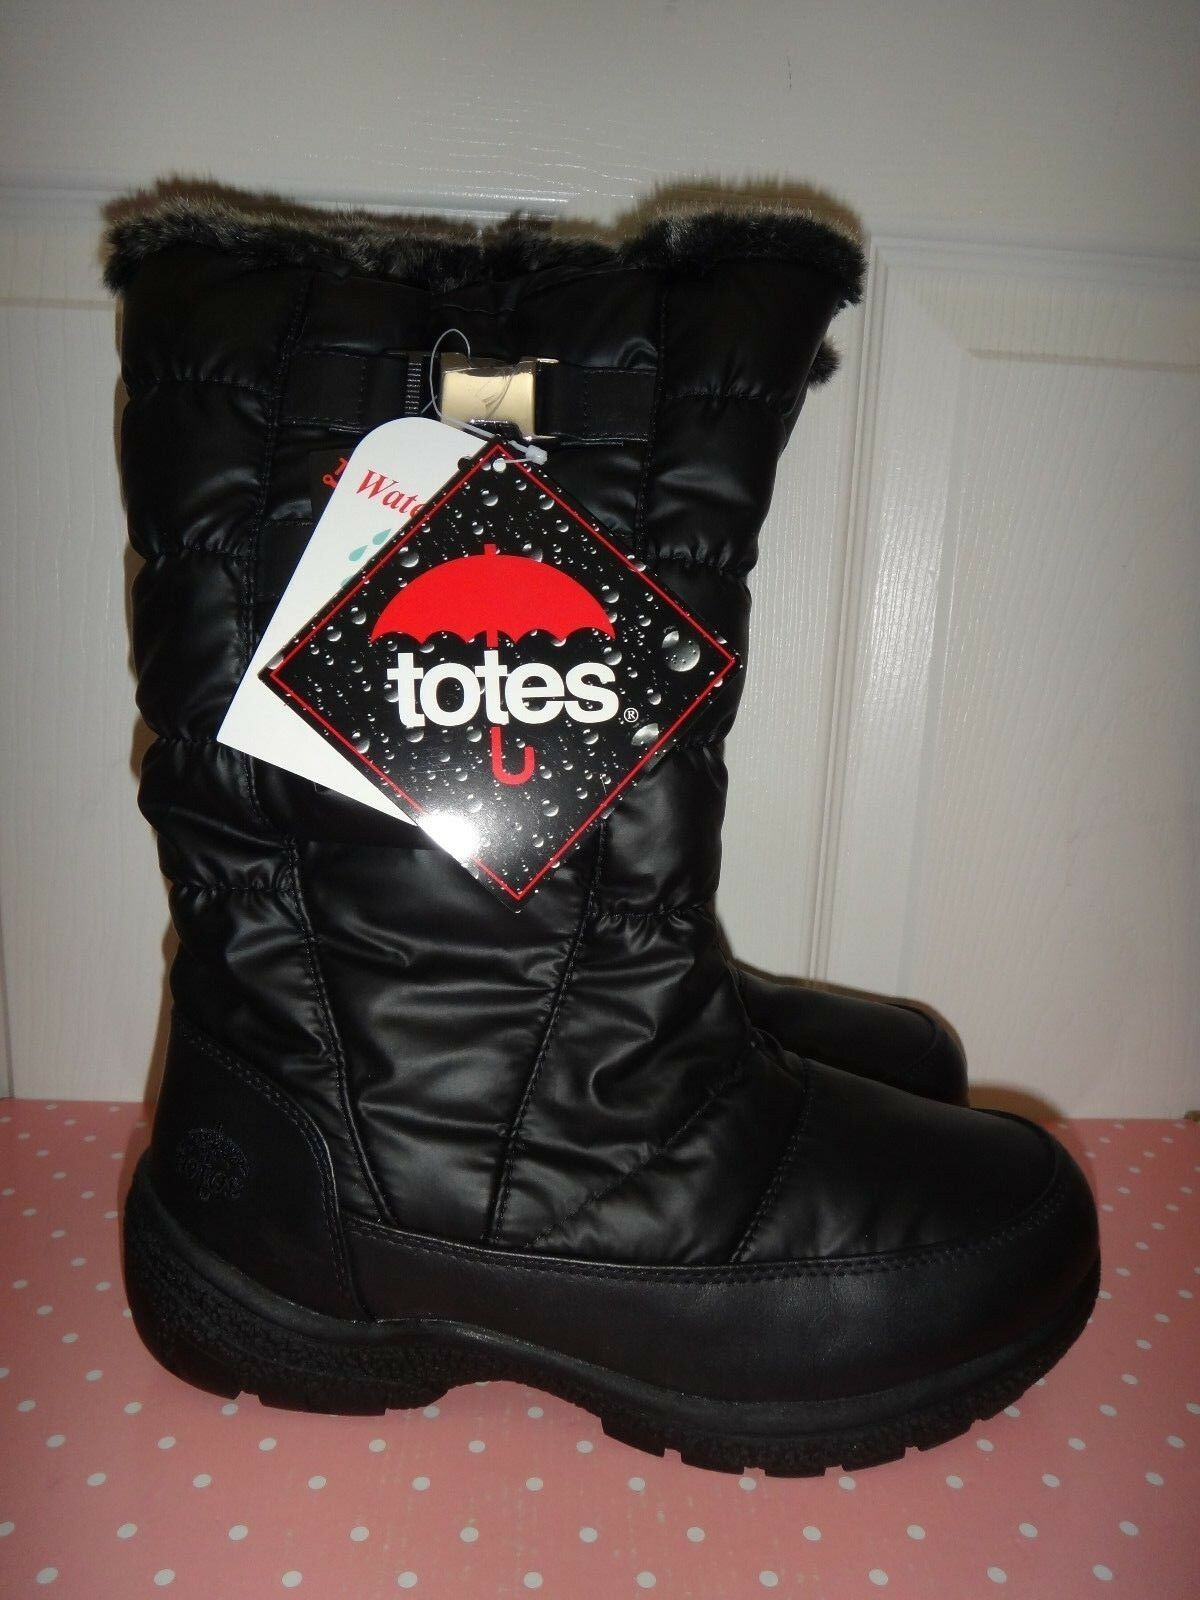 TOTES Womens WATERPROOF Zip Winter BOOTS Black Polyester Faux Fur Sz 6,7,7.5,8.5